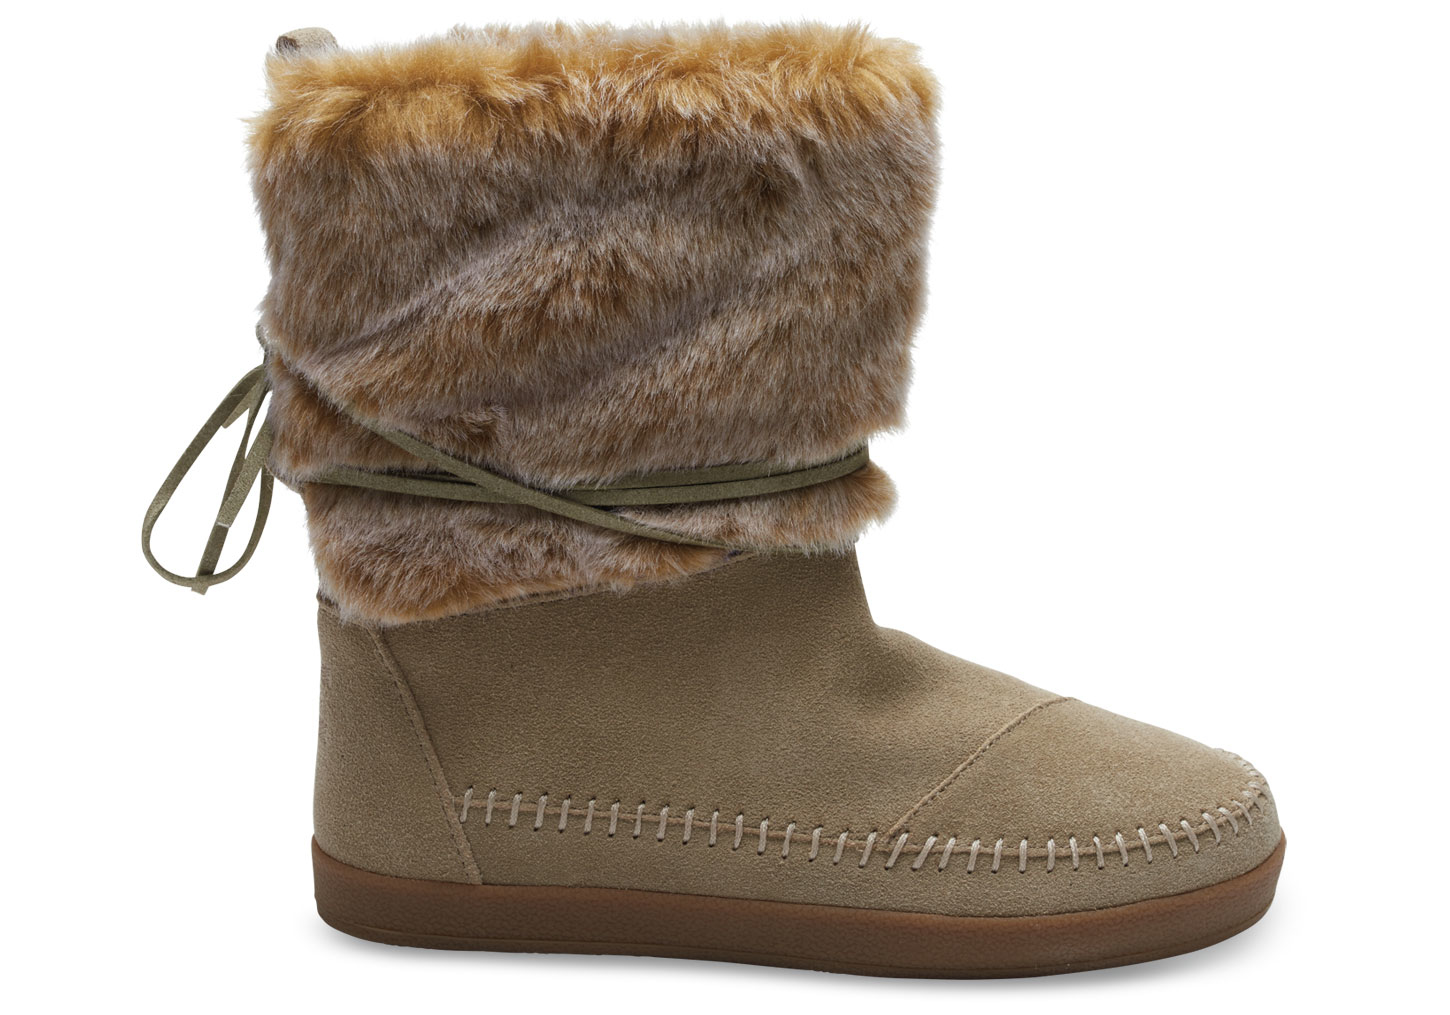 Toms Oxford Tan Suede Faux Hair Women S Nepal Boots In